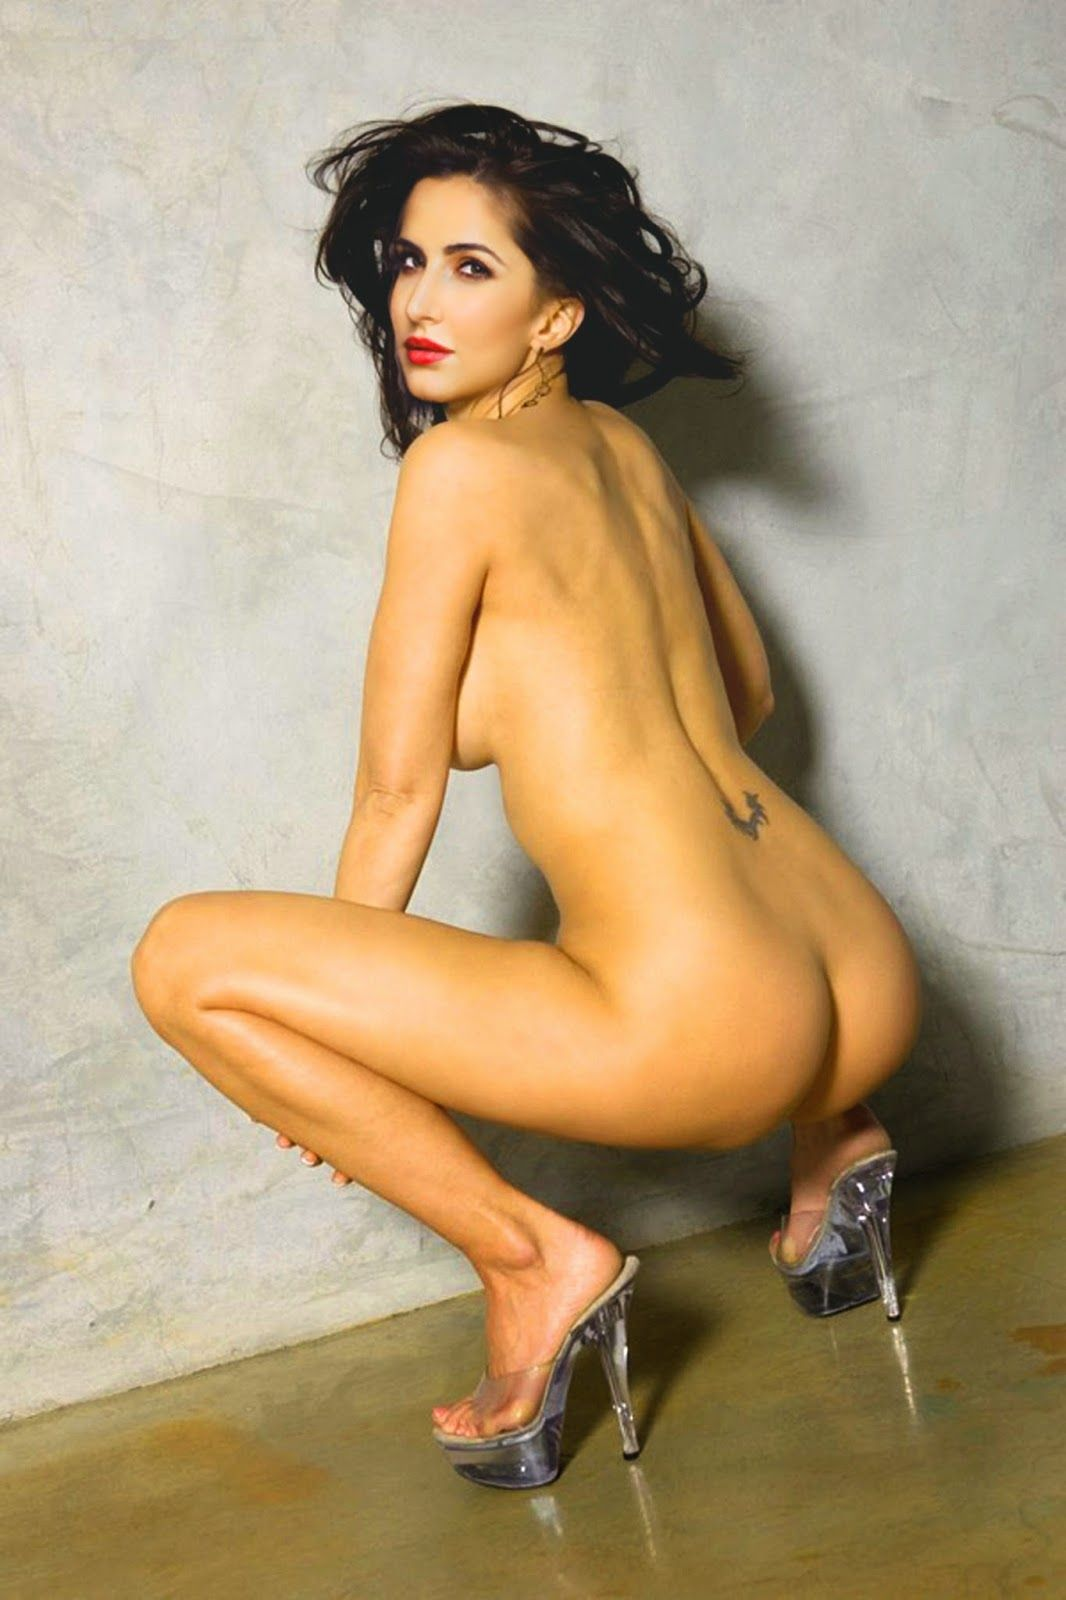 Actress Katrina Kaif Nude Naked Full Photo, Katrina Kaif -6977